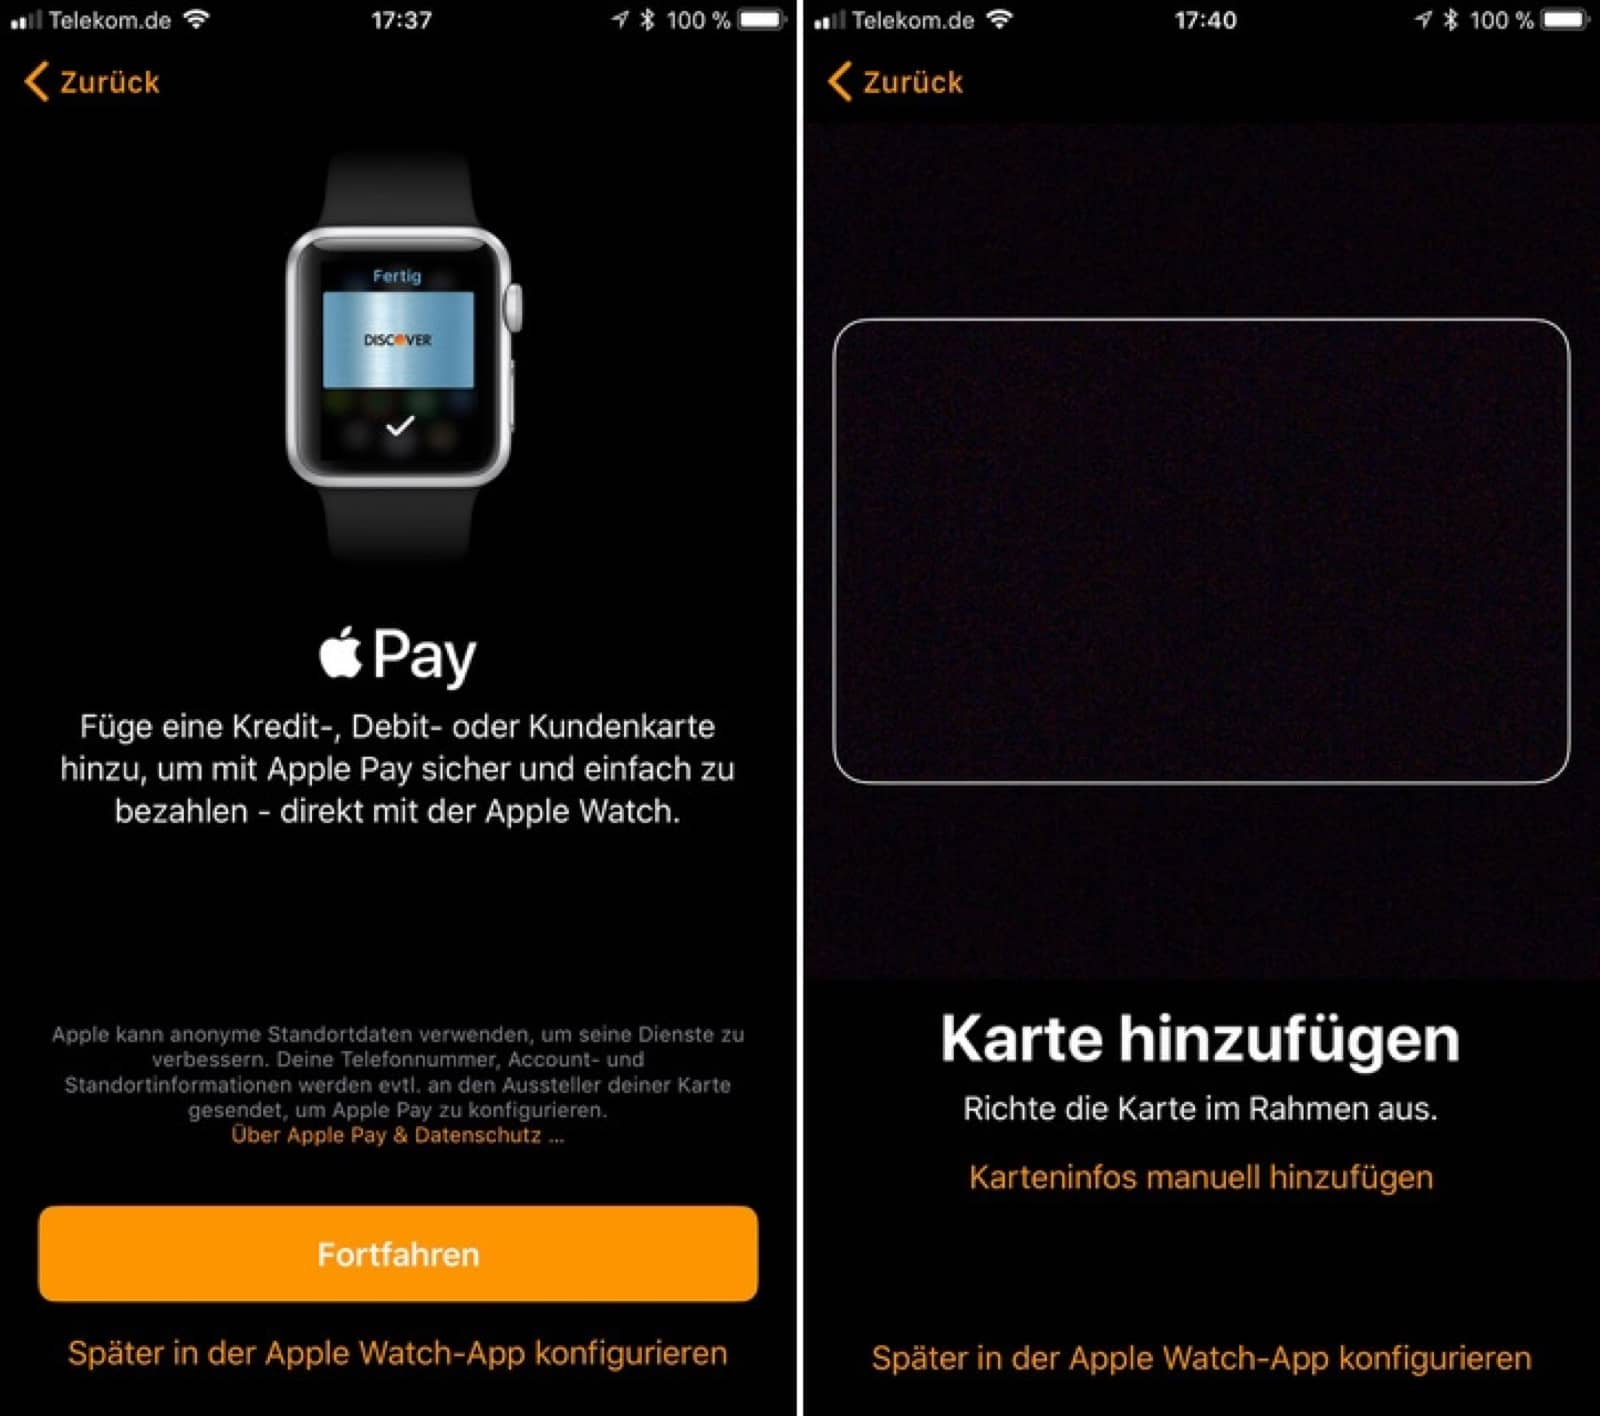 Apple Pay coming to Germany soon based on iPhone screenshots